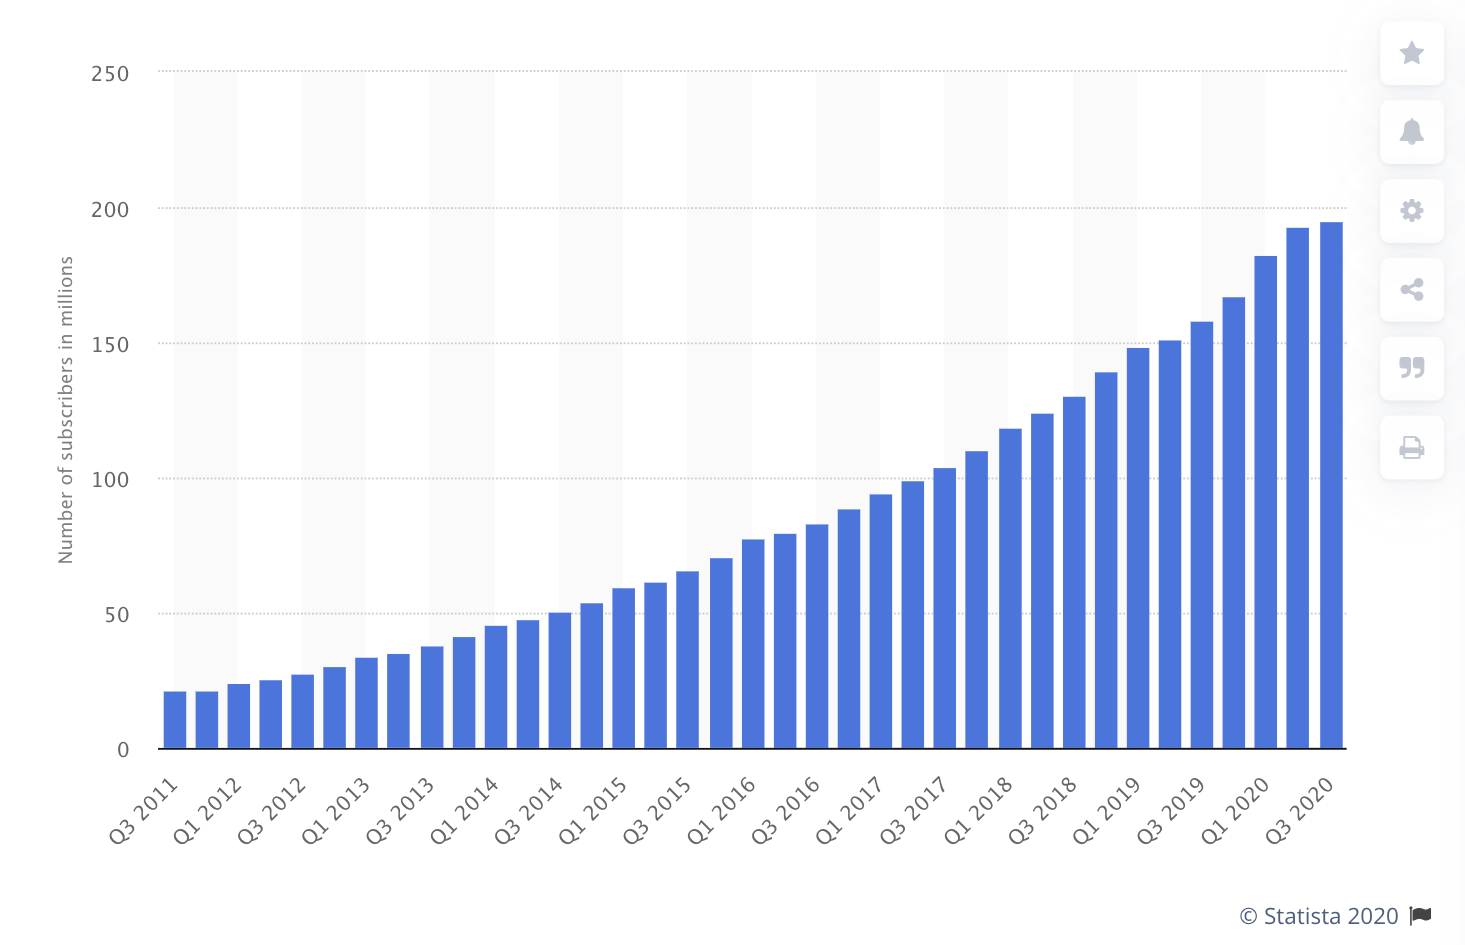 Number of Netflix paid subscribers worldwide 2011-2020